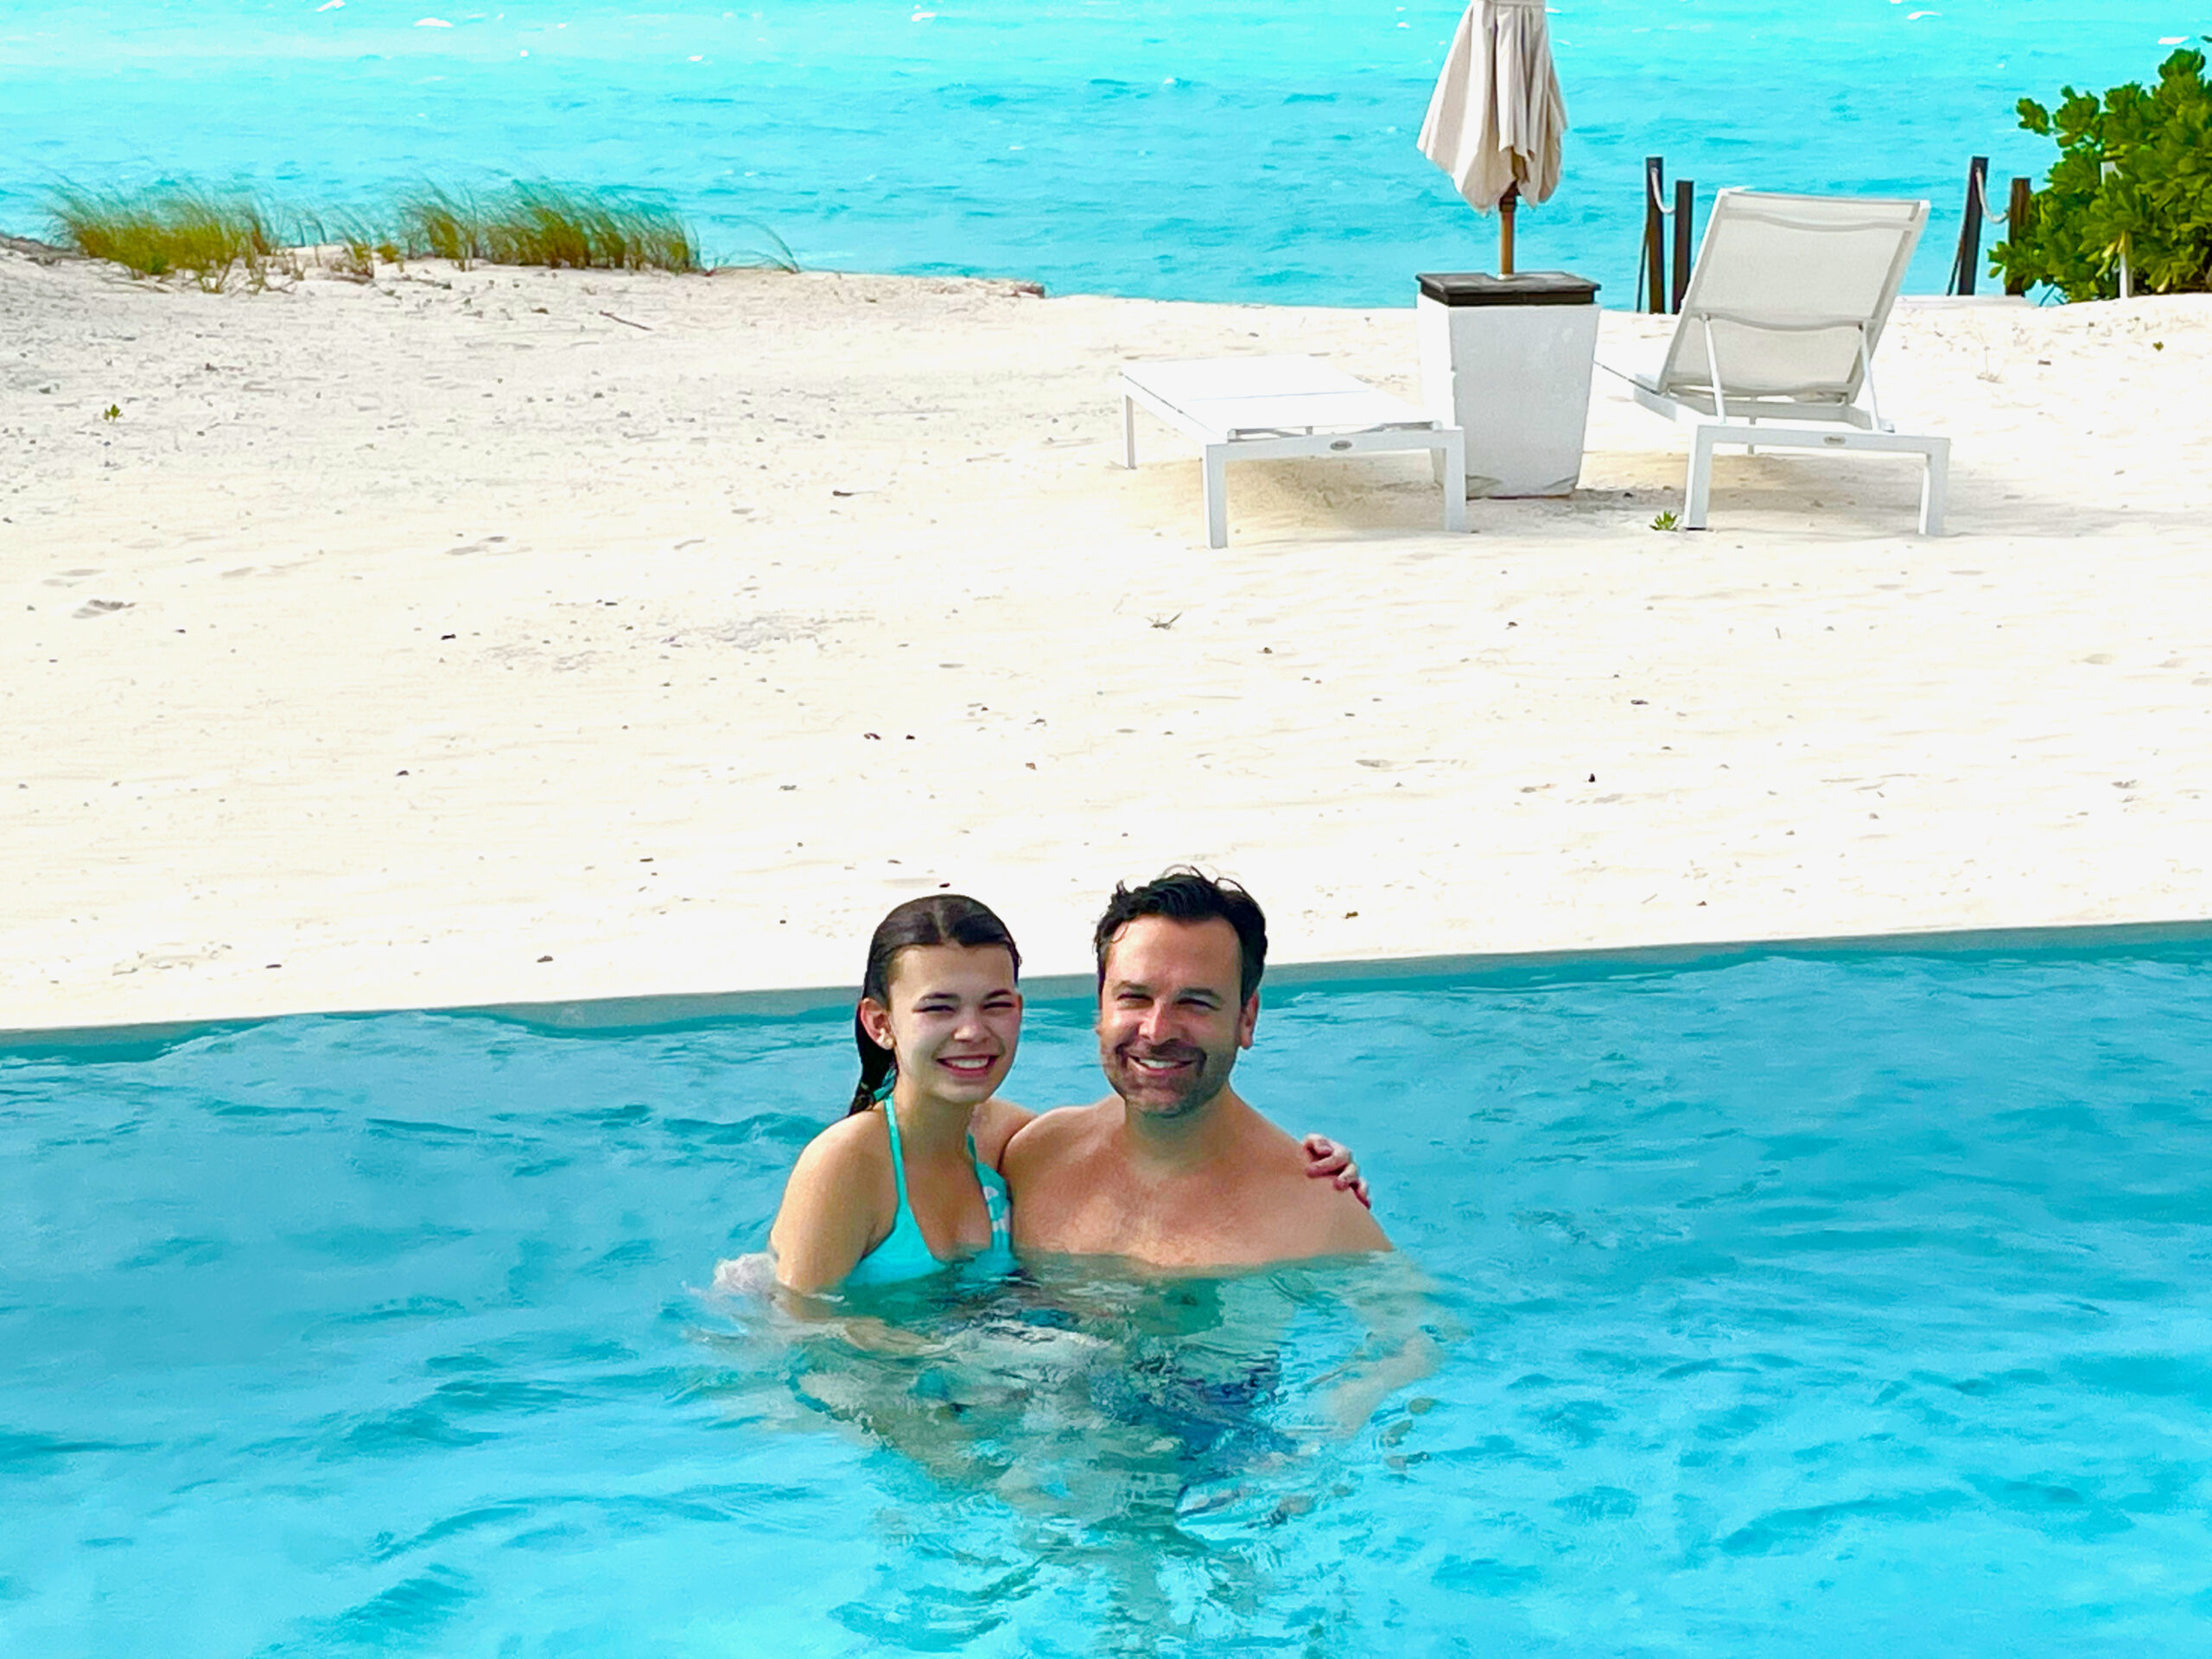 Family time at COMO Parrot Cay